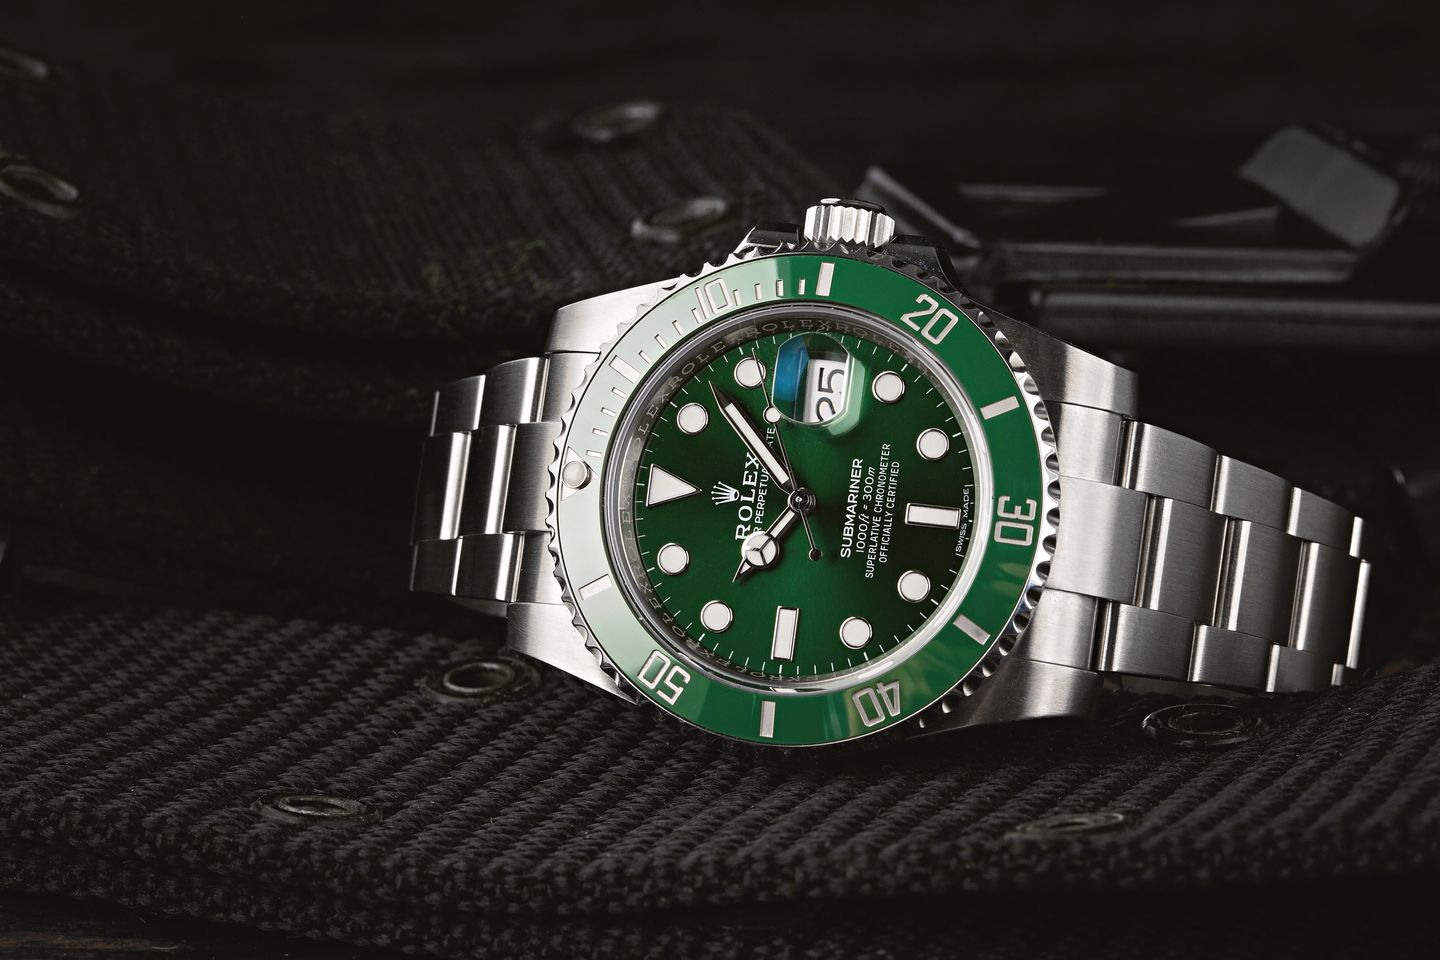 Rolex Yacht-Master 42 vs Submariner Hulk